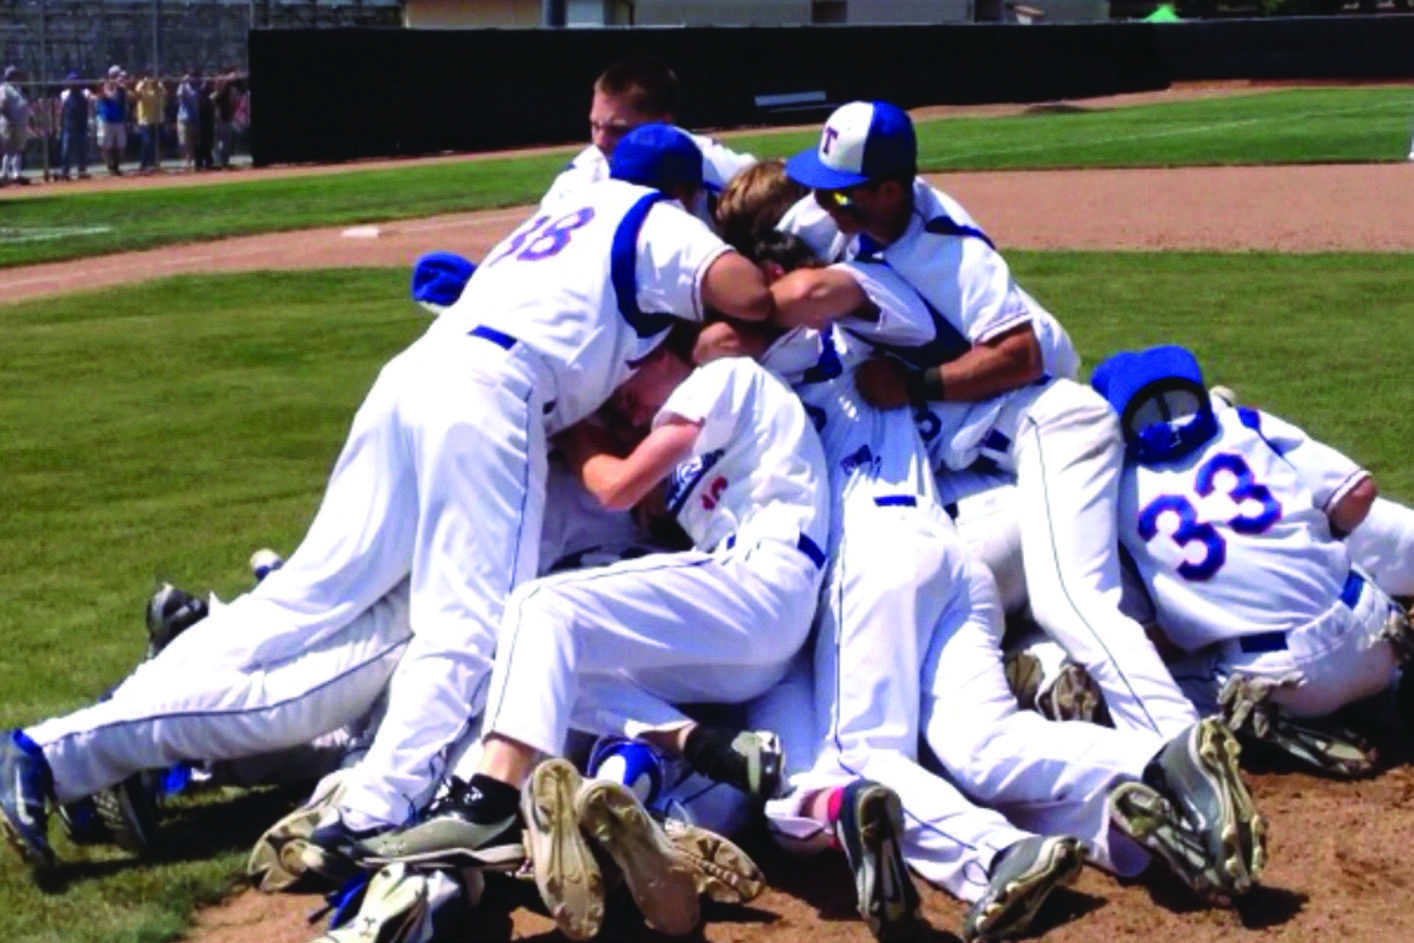 Since 1929: The  boy's baseball team runs in for a dog pile after Max Gamboa strikes out Alhambra's last batter, making them officially NCS champions for the first time in 85 years.